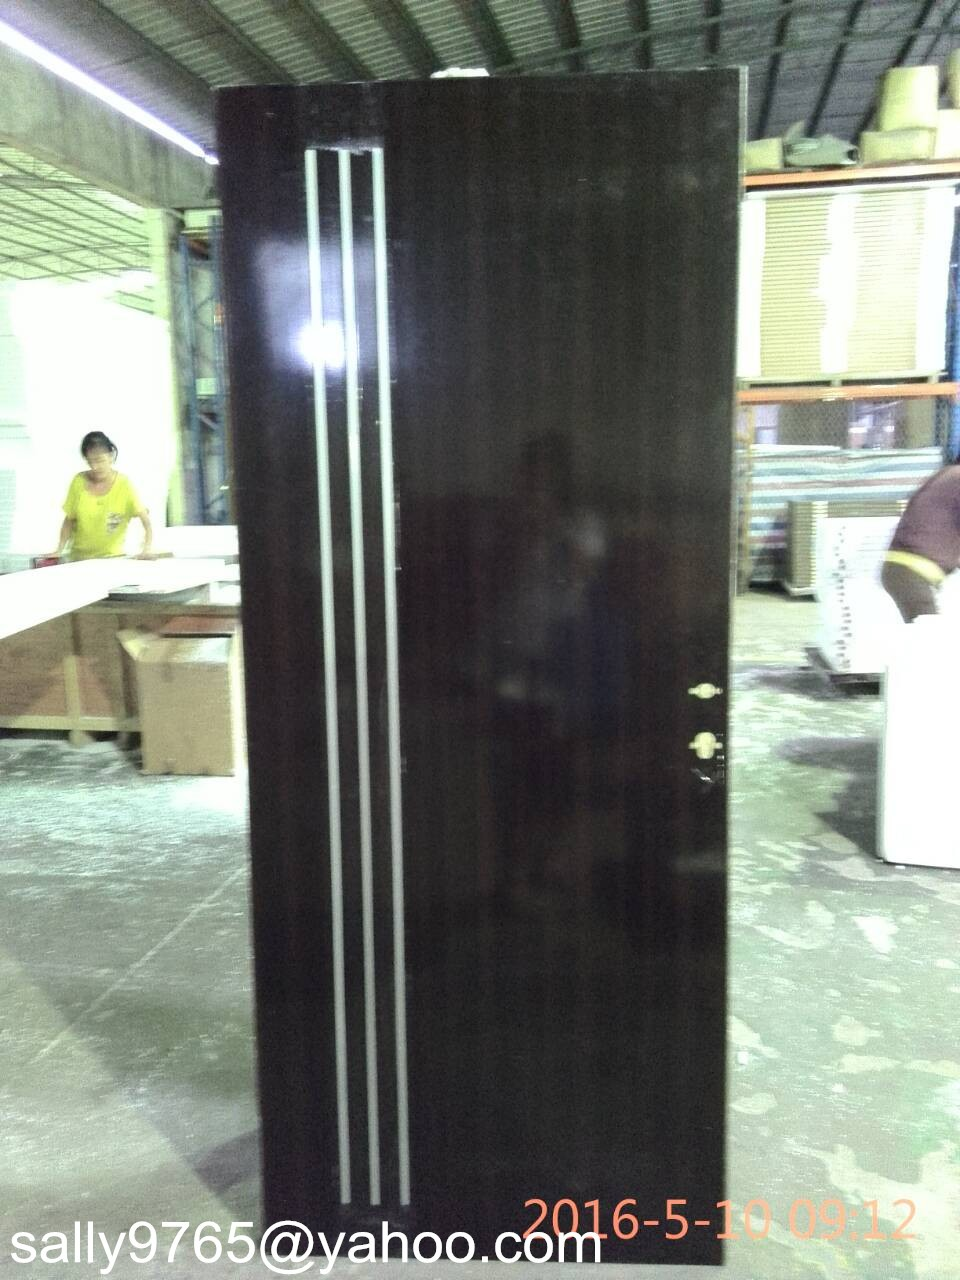 Israel Galvanized Steel Door Base Flush Door